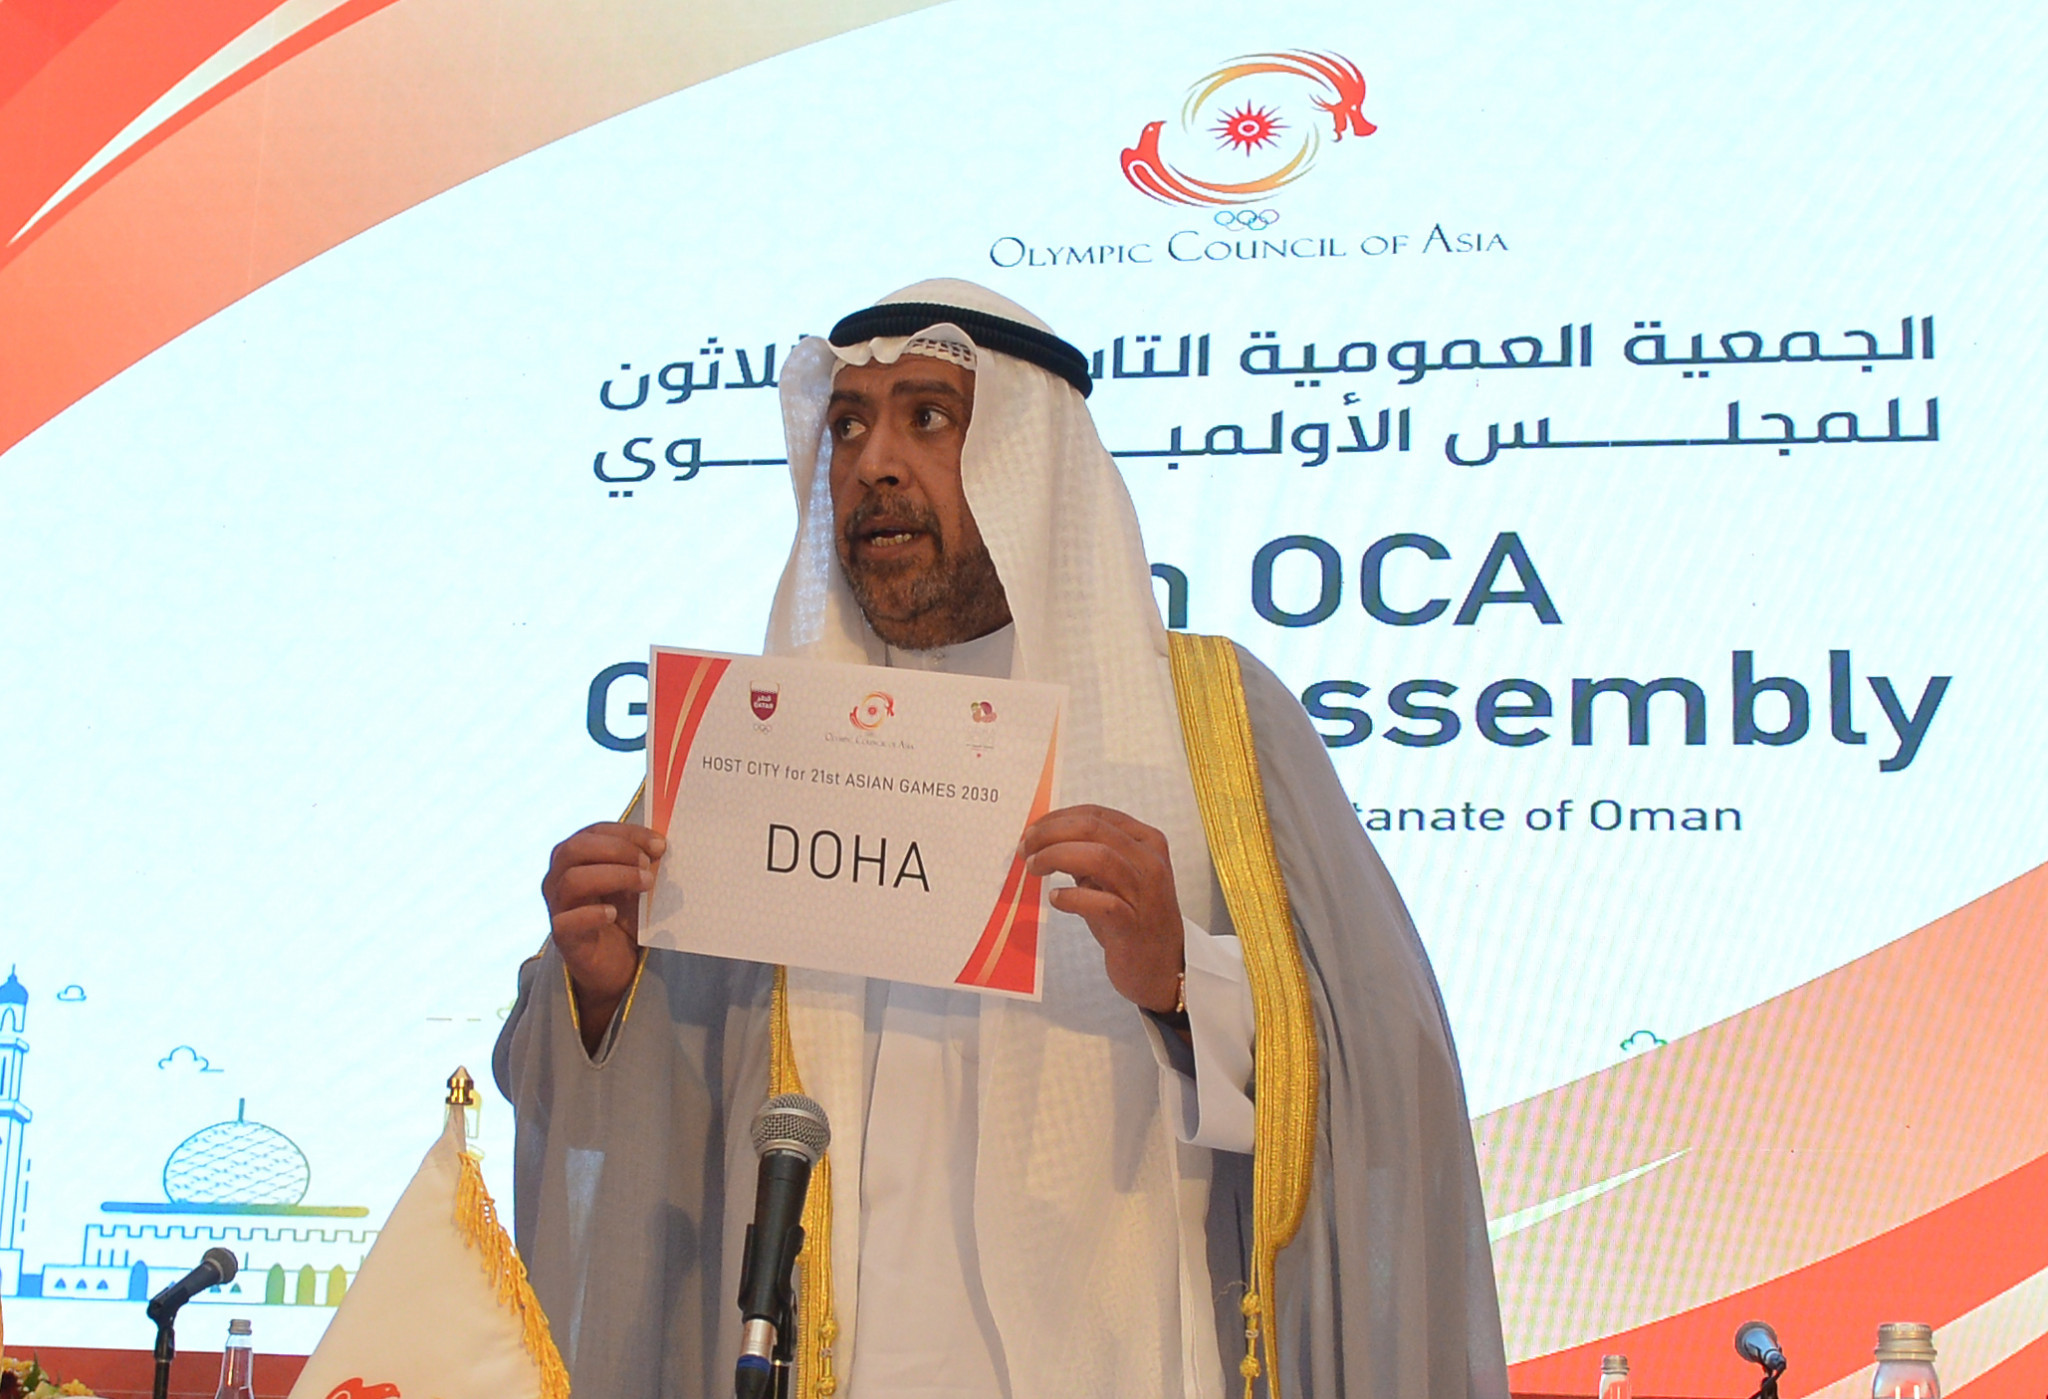 The QOC was able to nominate an OCA Executive Board member after being awarded the 2030 Asian Games last month ©Getty Images